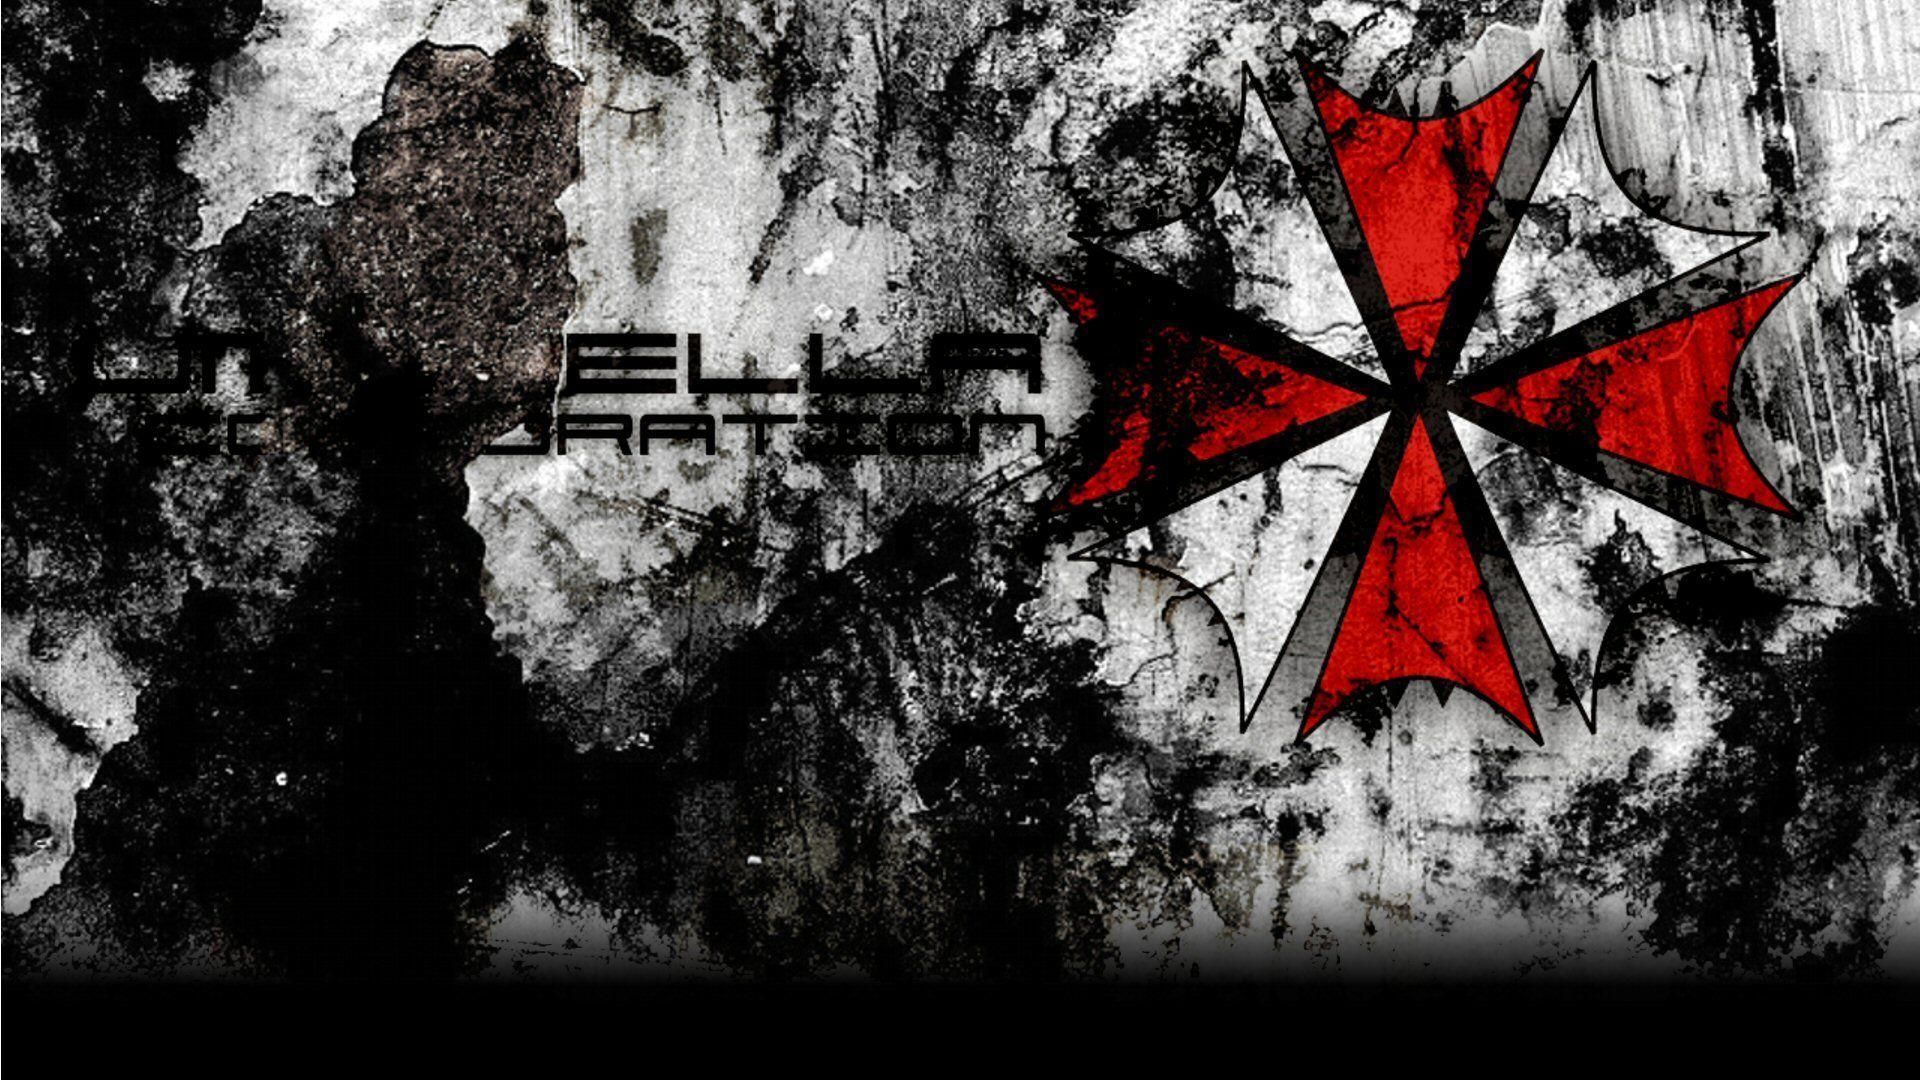 Resident Evil HD Wallpapers - Wallpaper Cave